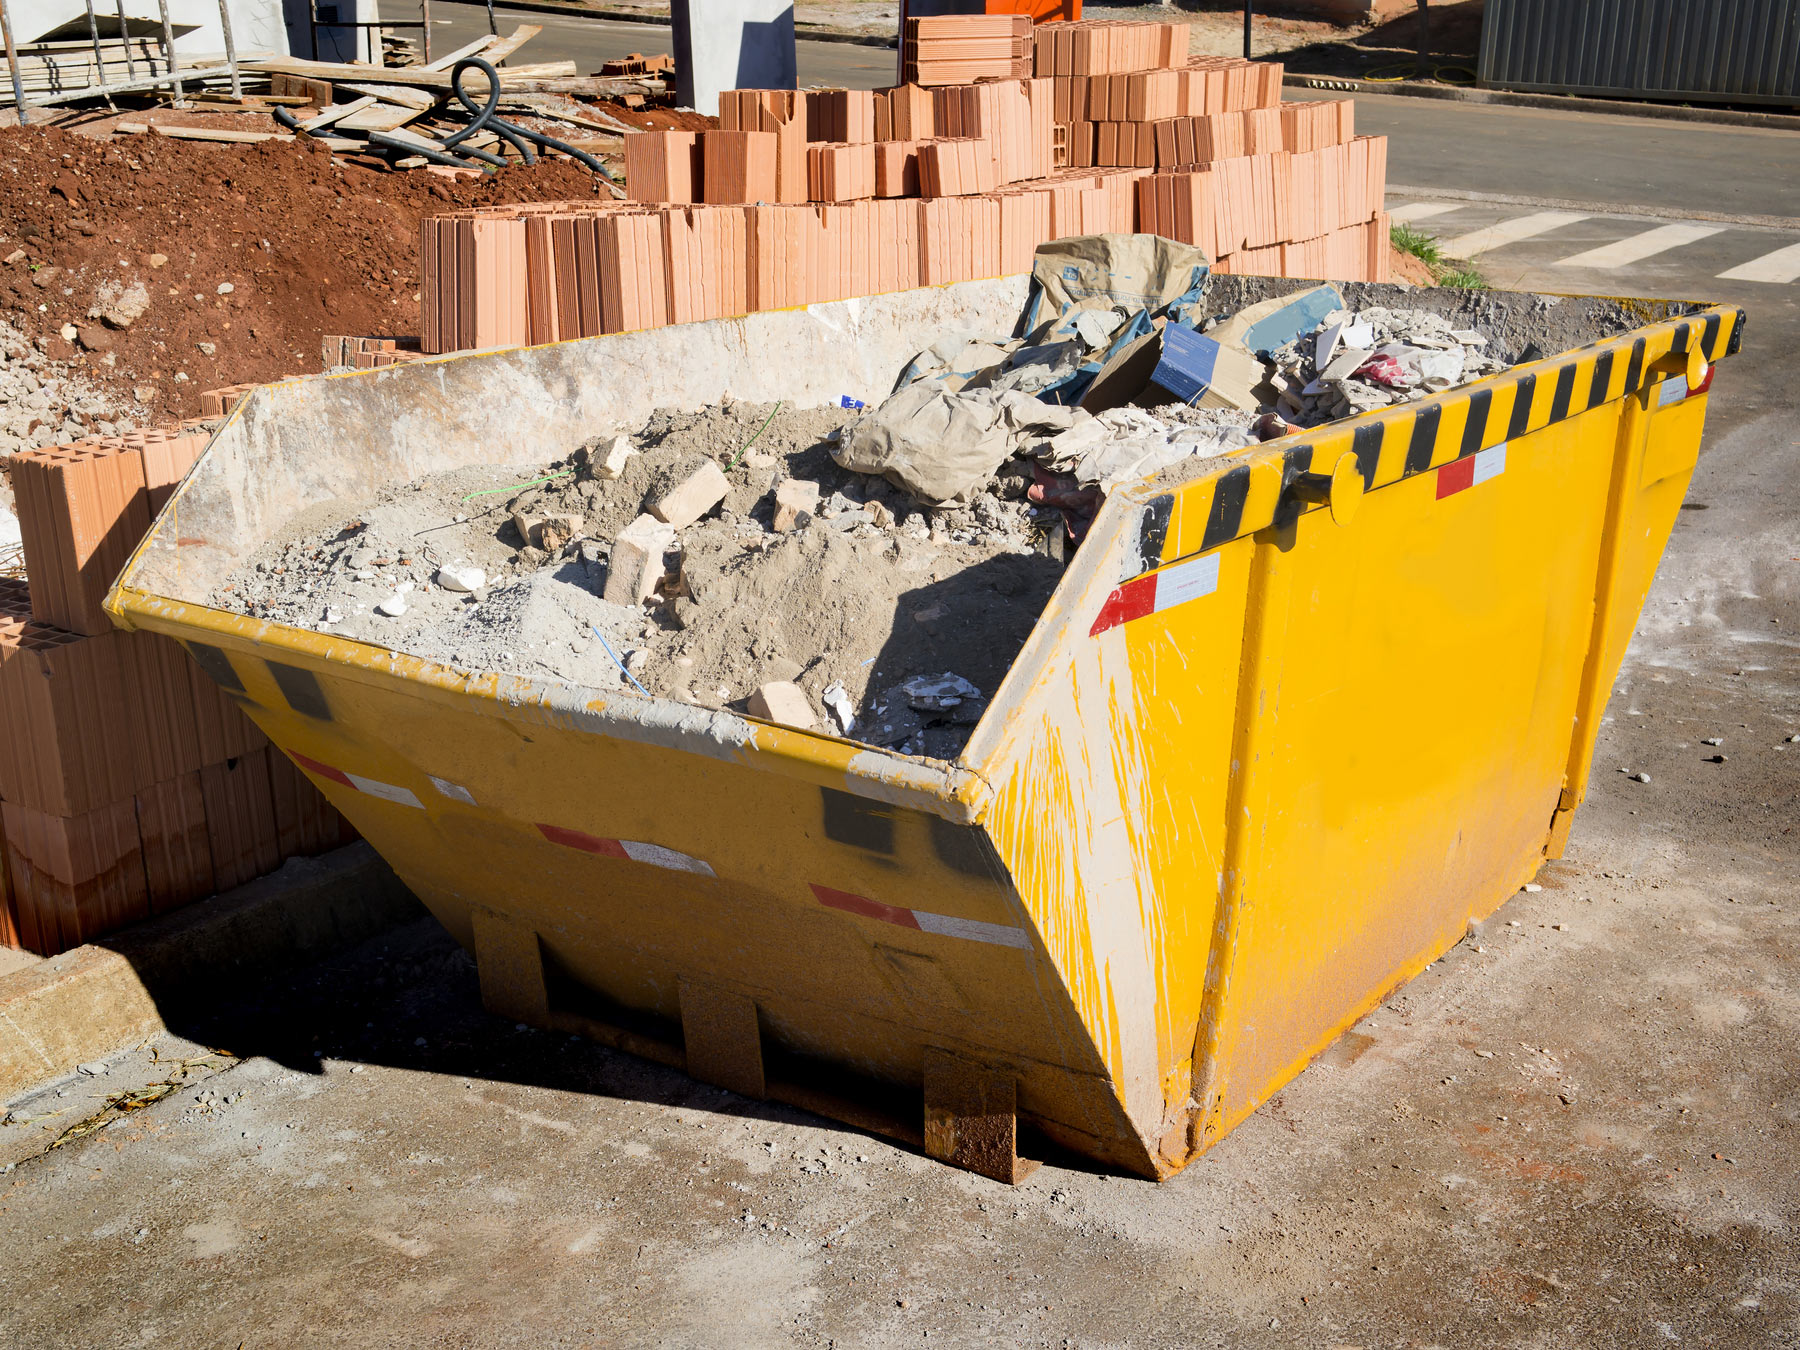 How to Dispose of Concrete Properly